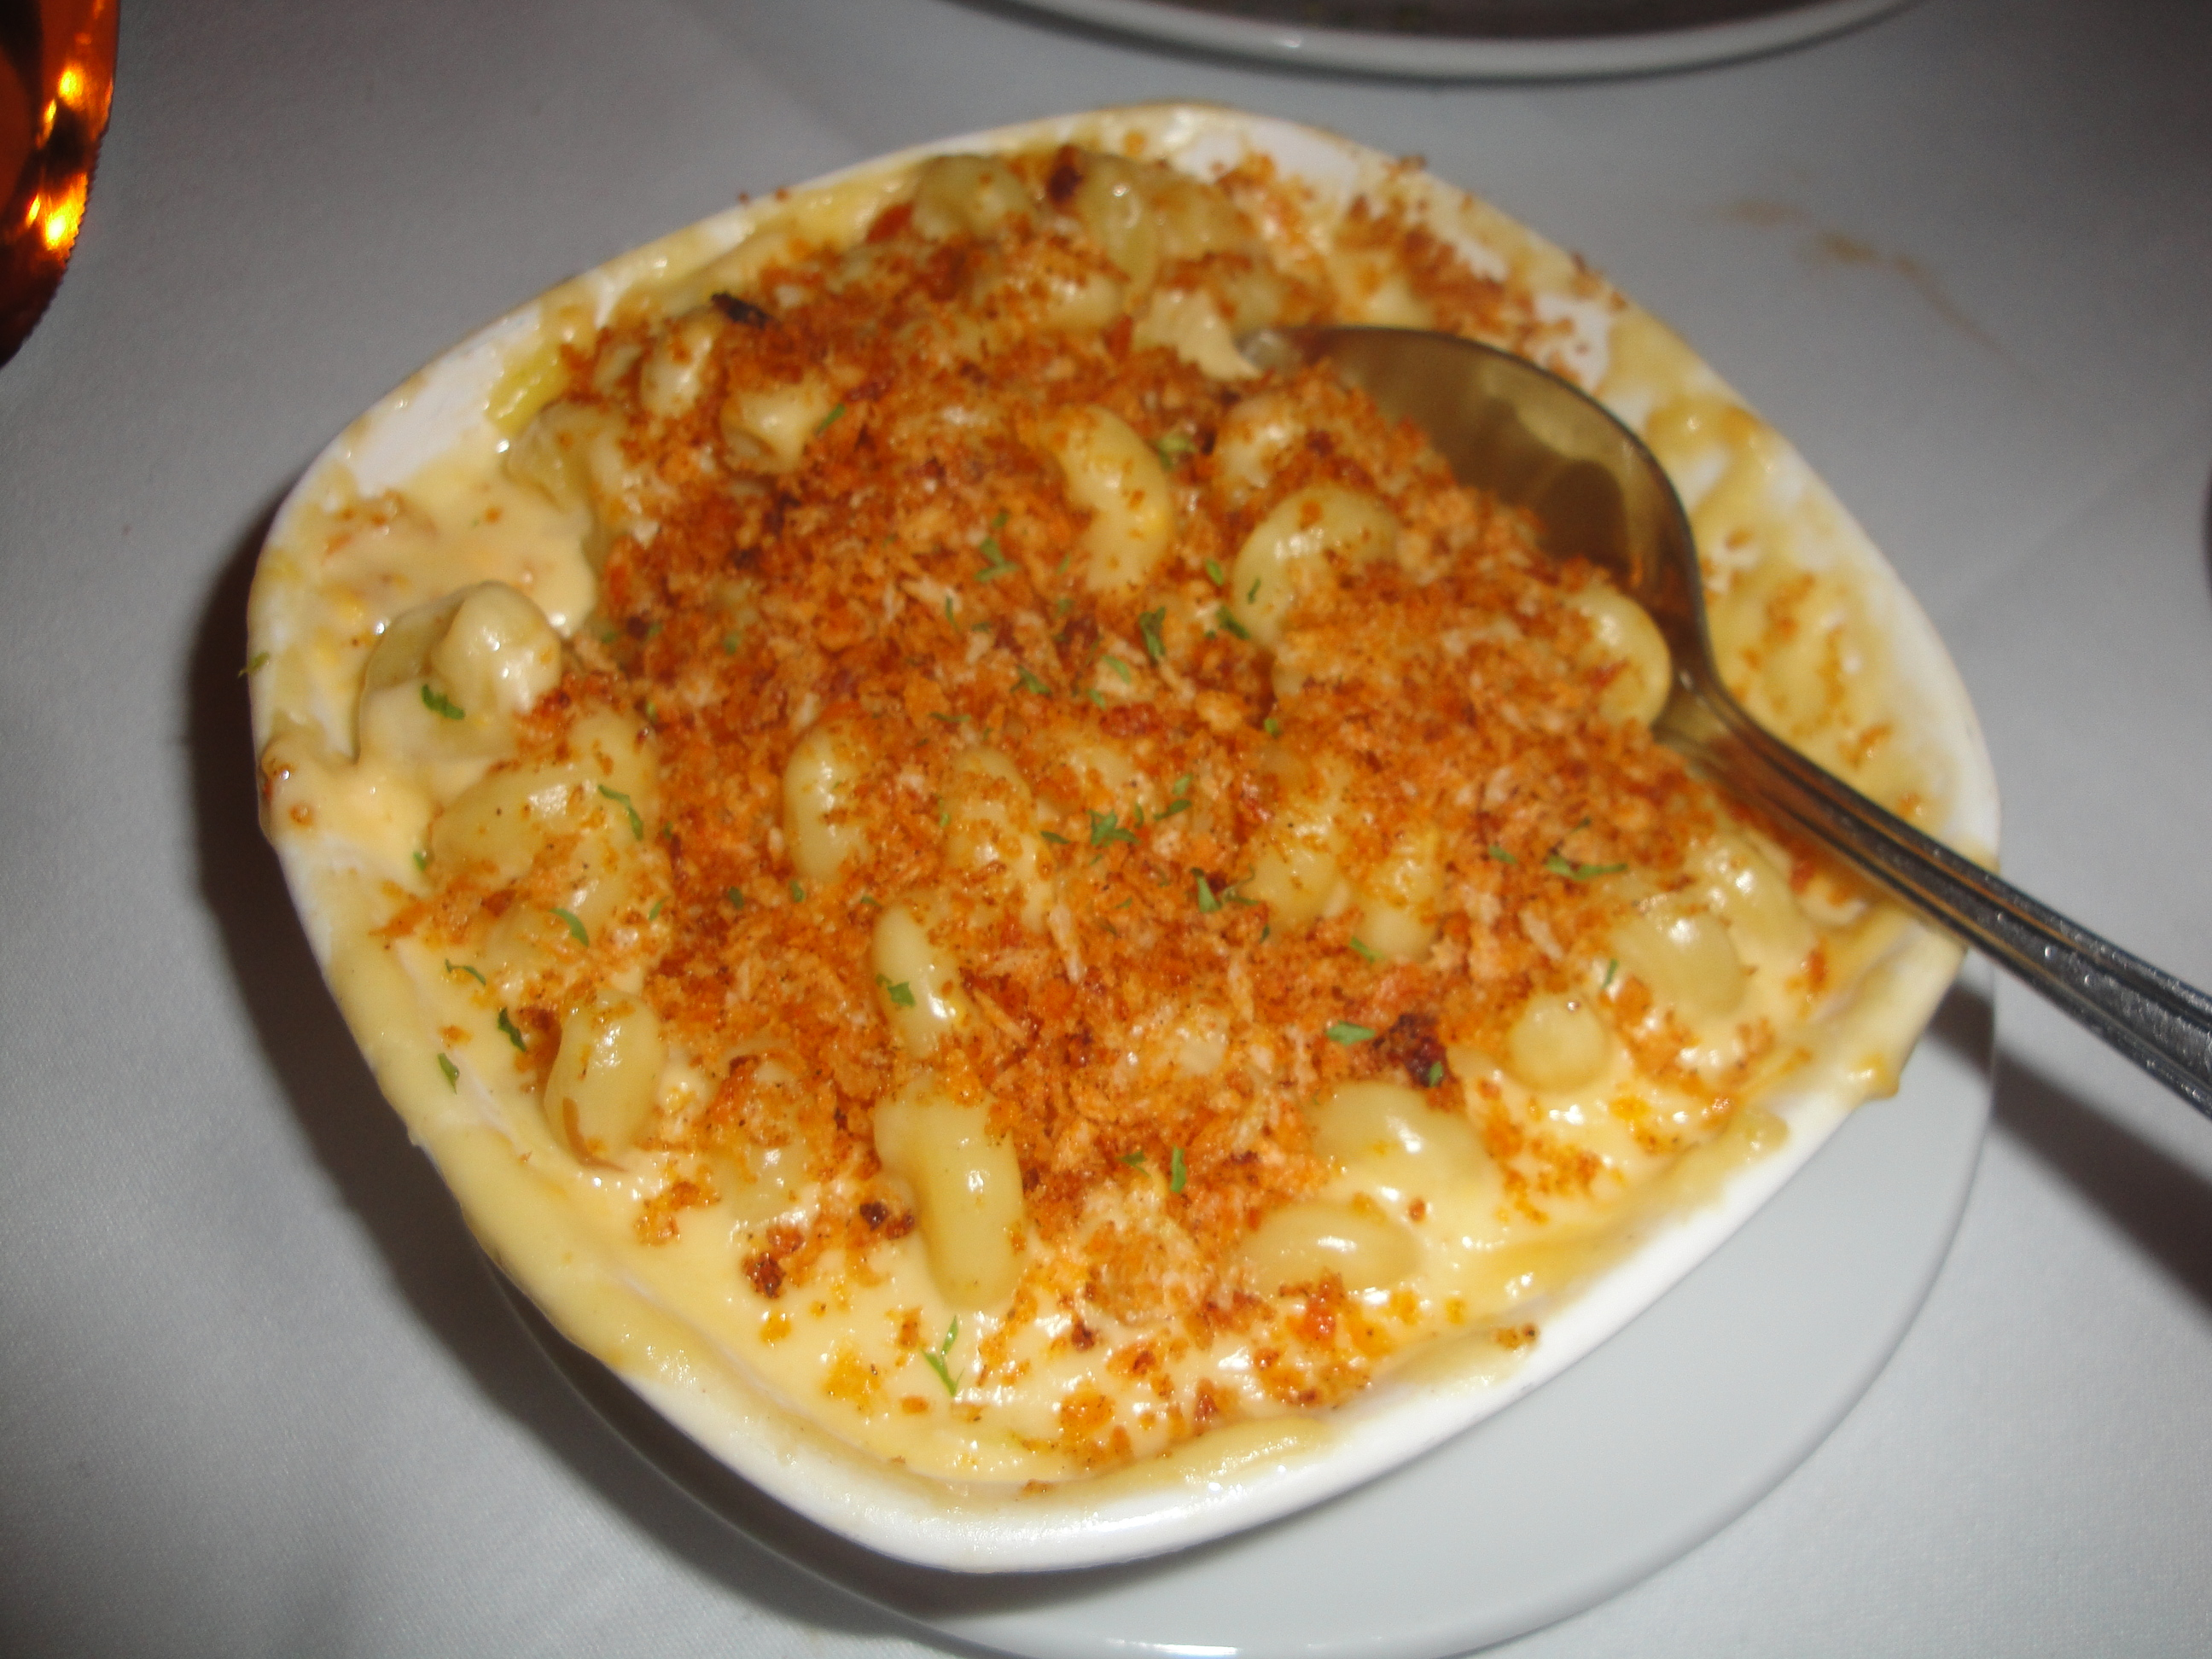 My Husband Chose The Chipotle Cheddar Mac Cheese I Told You Loves His One Bite Into Classic Elbow Macaroni And Mixture